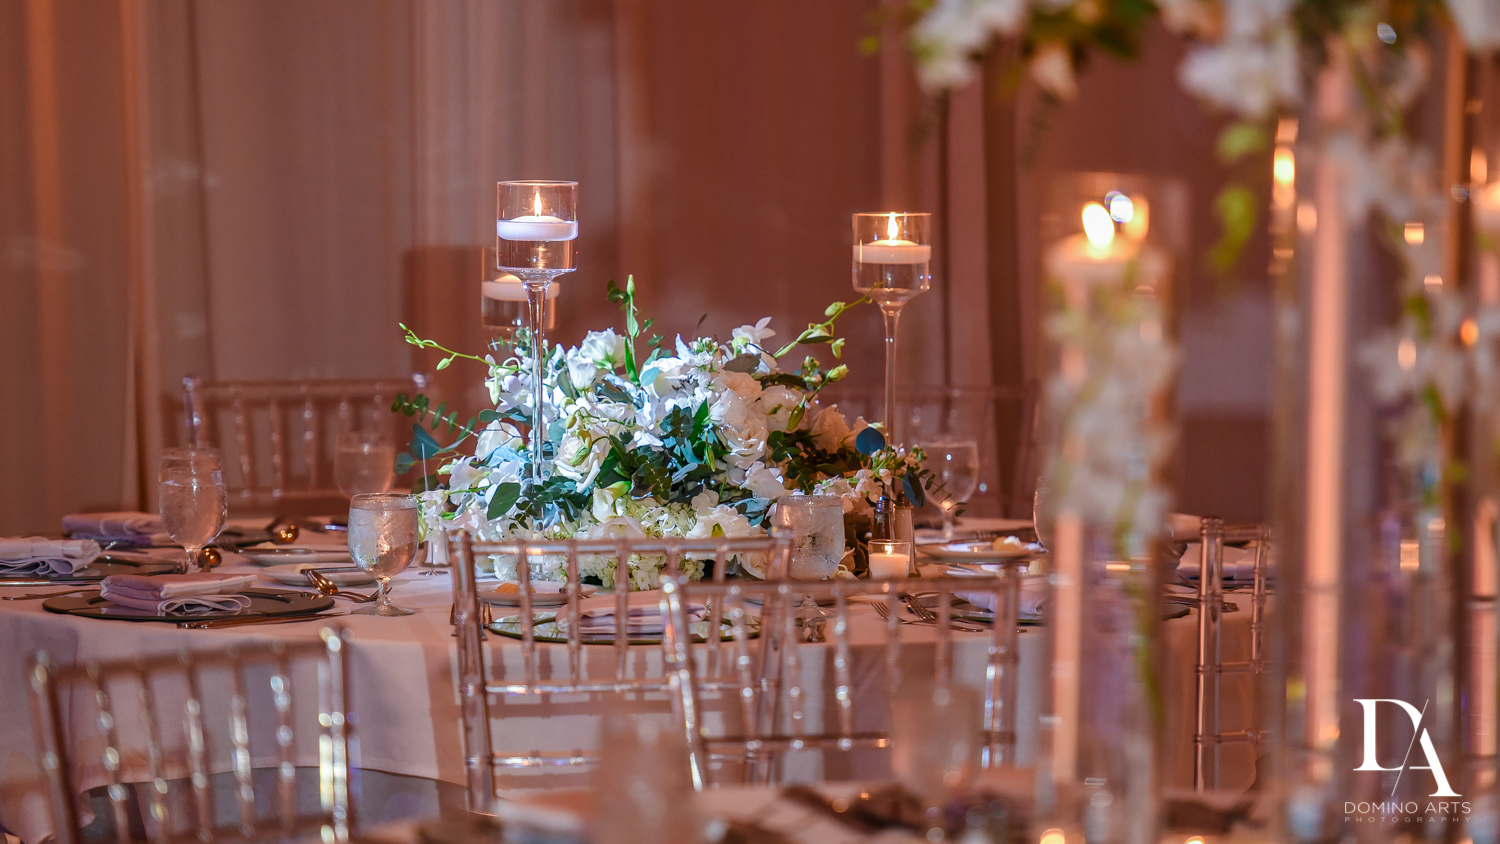 high end decor at Stunning Golf Course Wedding at PGA National Palm Beach by Domino Arts Photography